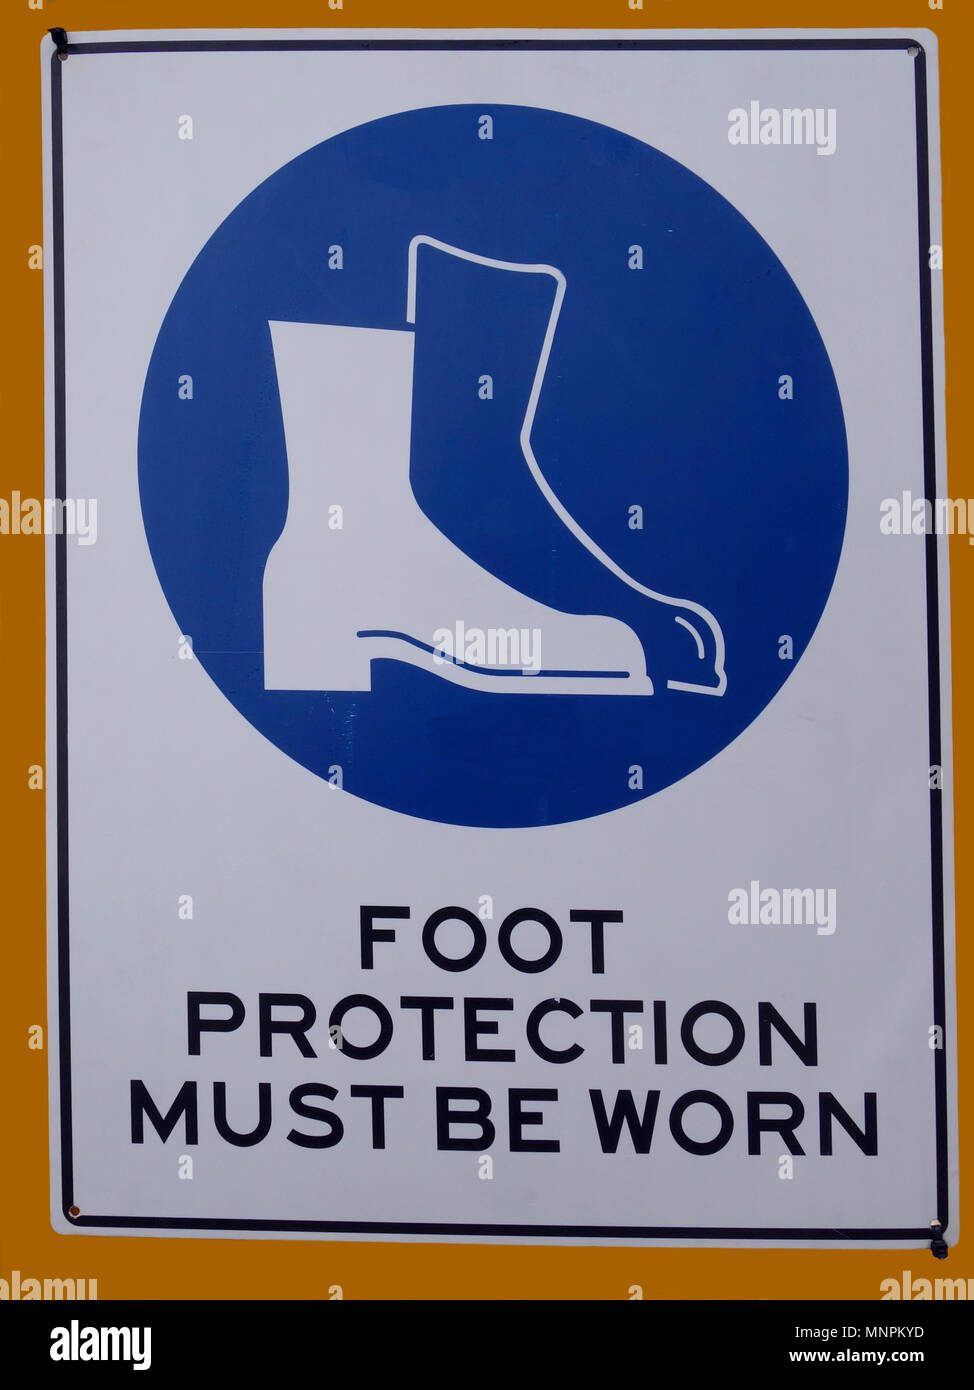 A danger sign warning that protection must be worn for feet - Stock Image